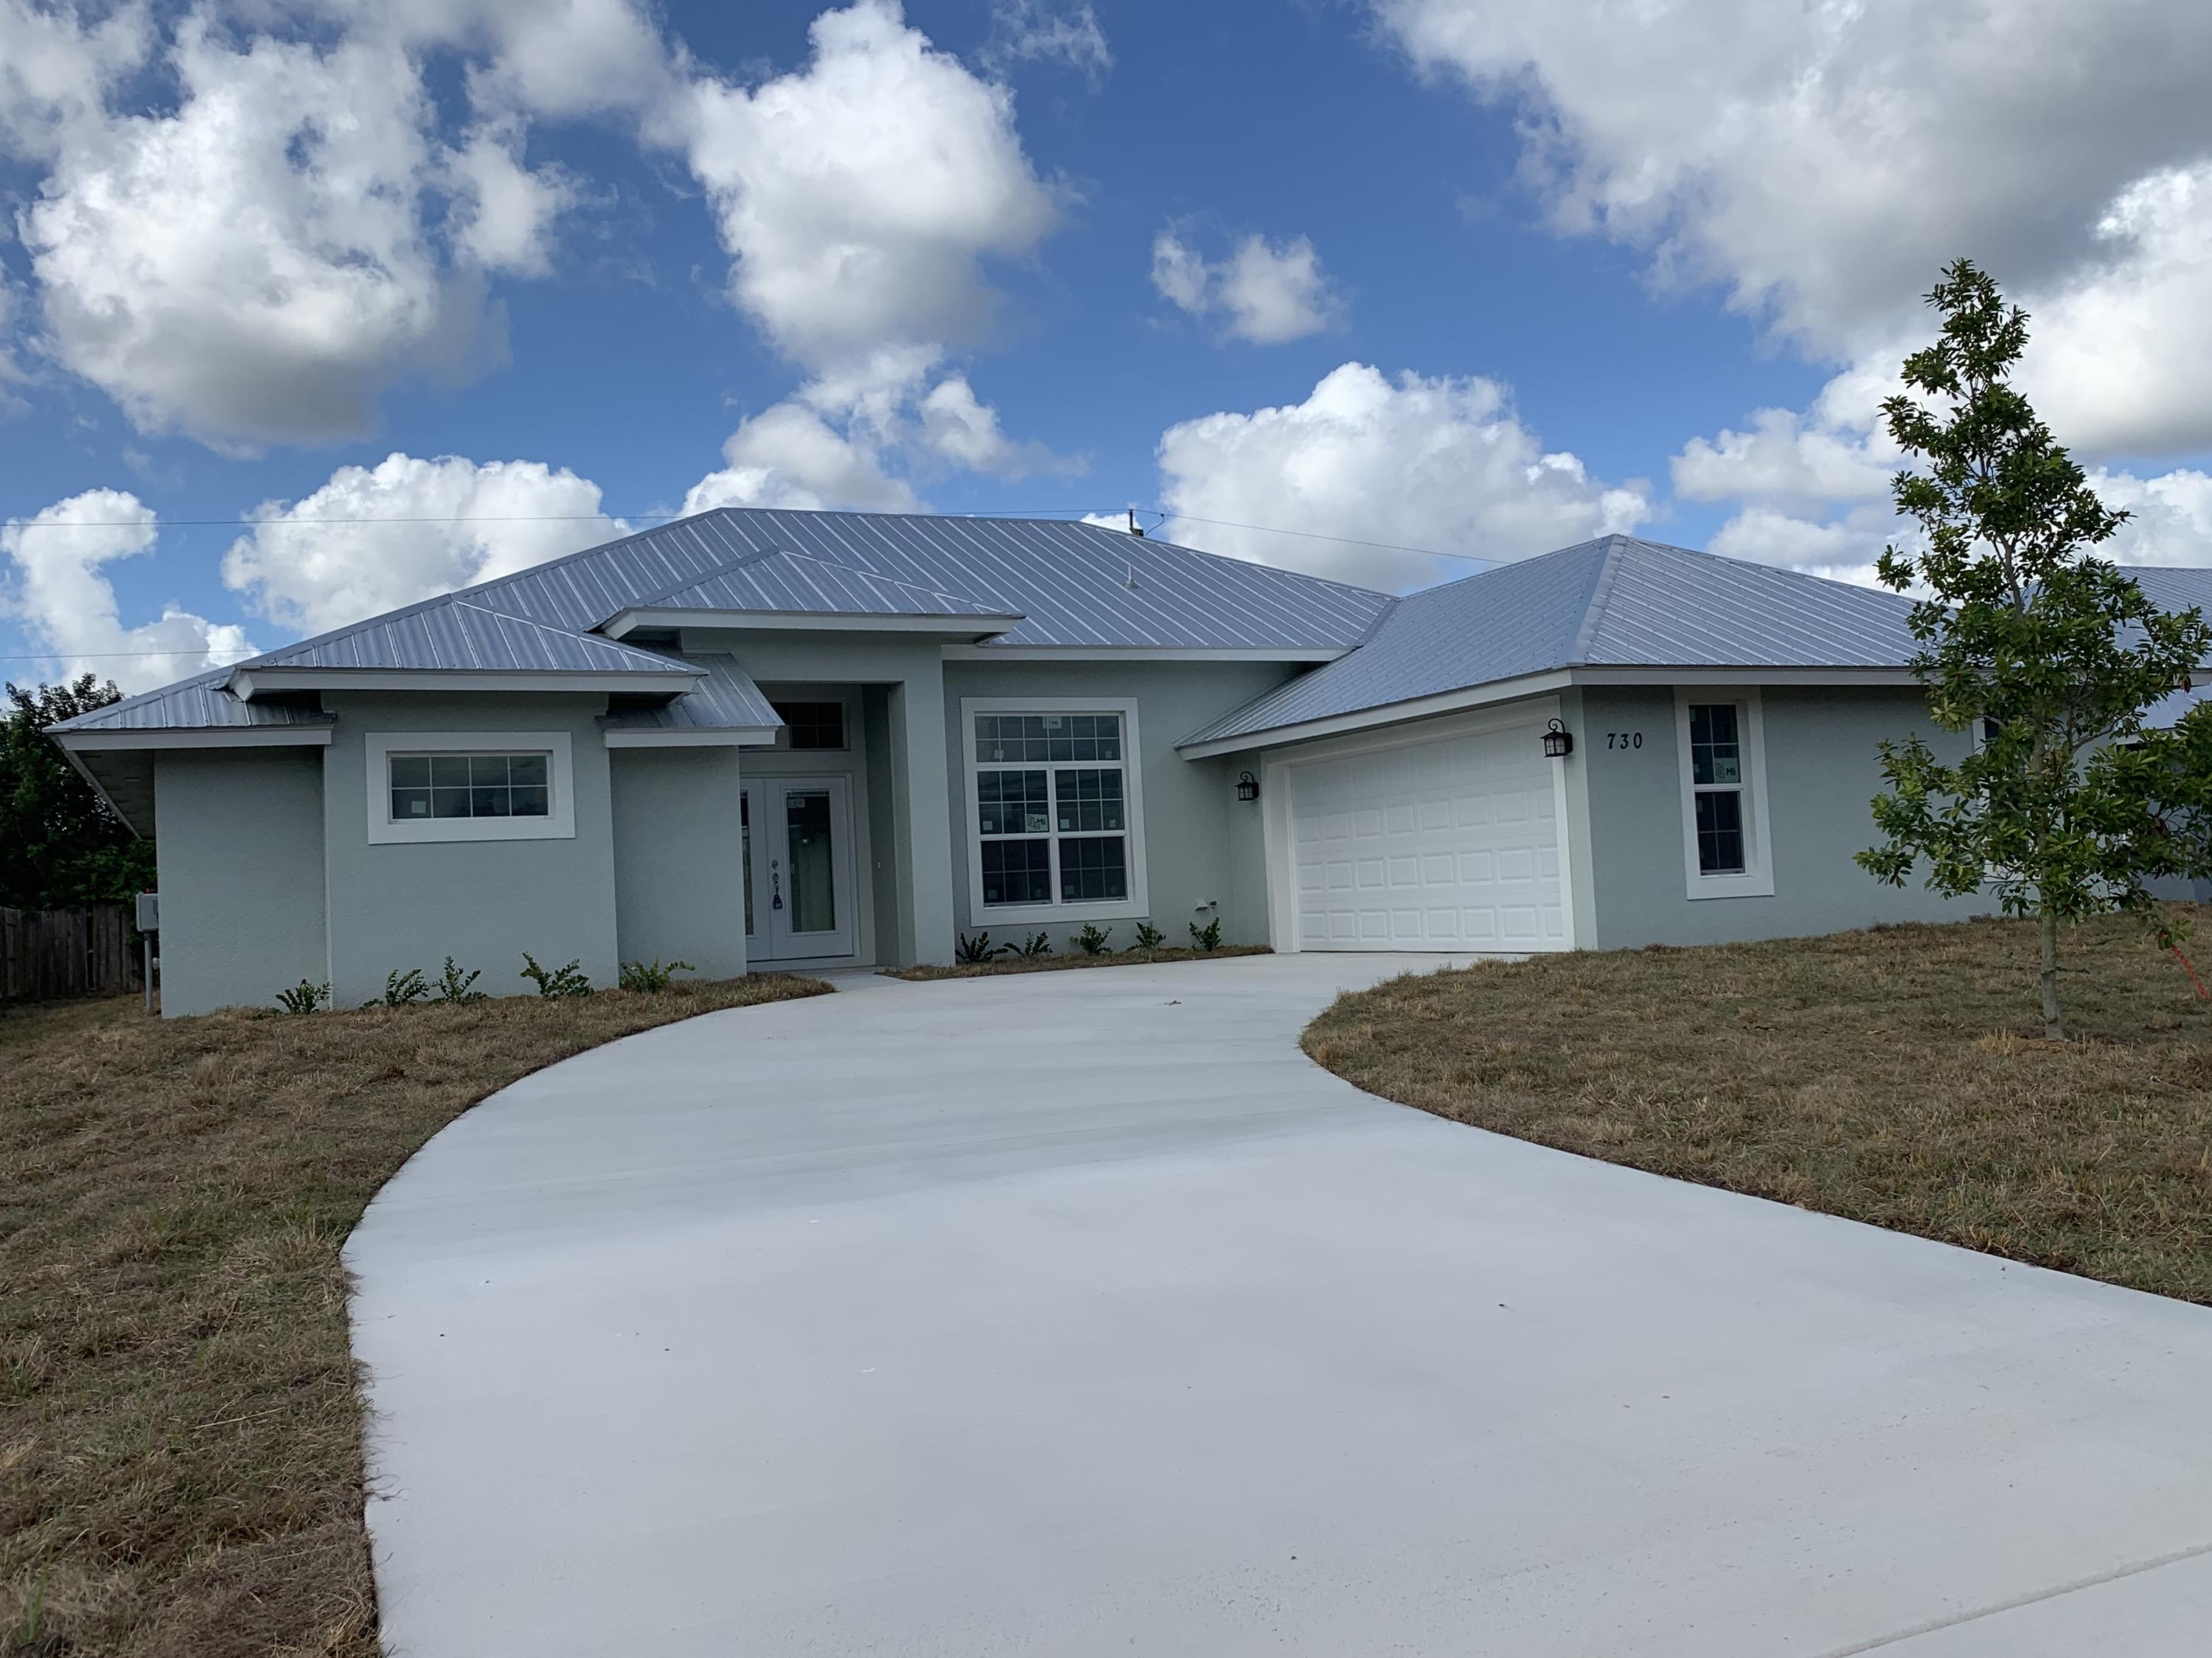 730 Carmelite Street, Port Saint Lucie, Florida 34983, 4 Bedrooms Bedrooms, ,3 BathroomsBathrooms,Single Family,For Sale,Carmelite,RX-10495082